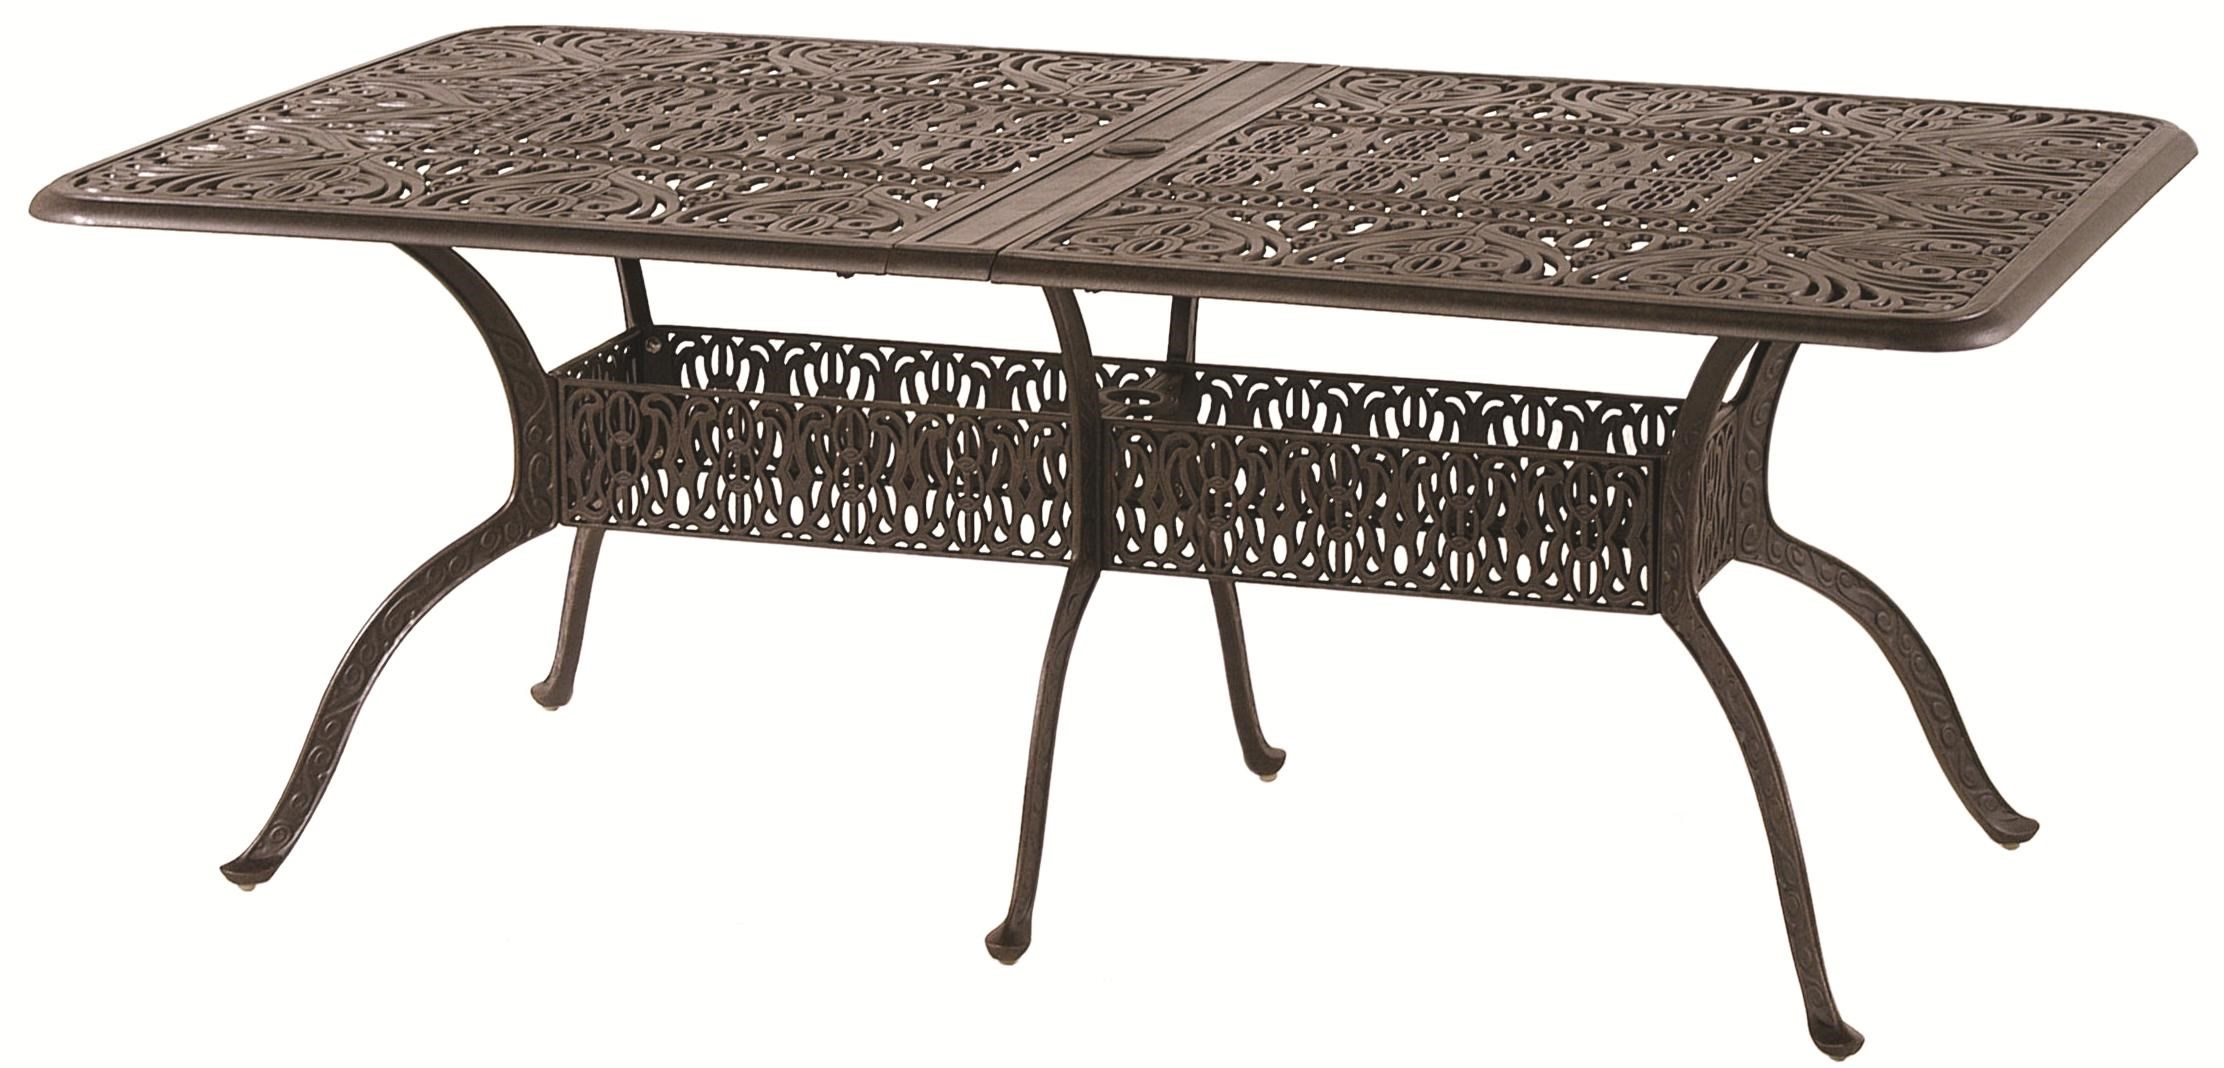 Hanamint Tuscany Aluminum Dining Table With 24u0027 Extension   John V Schultz  Furniture   Outdoor Dining Table